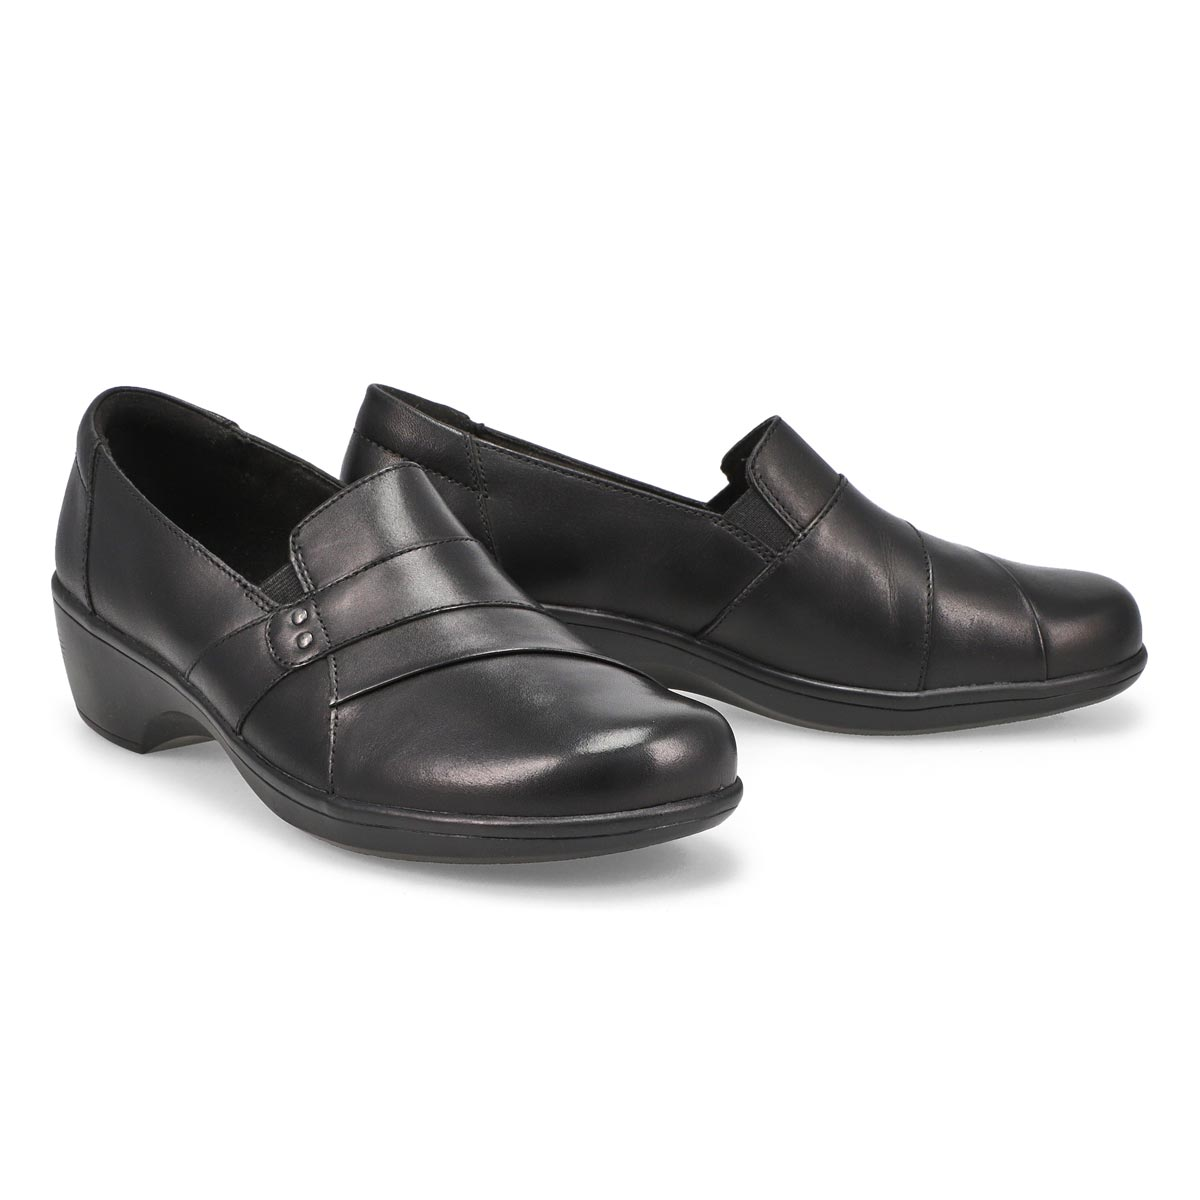 Lds May Marigold black dress loafer-WIDE